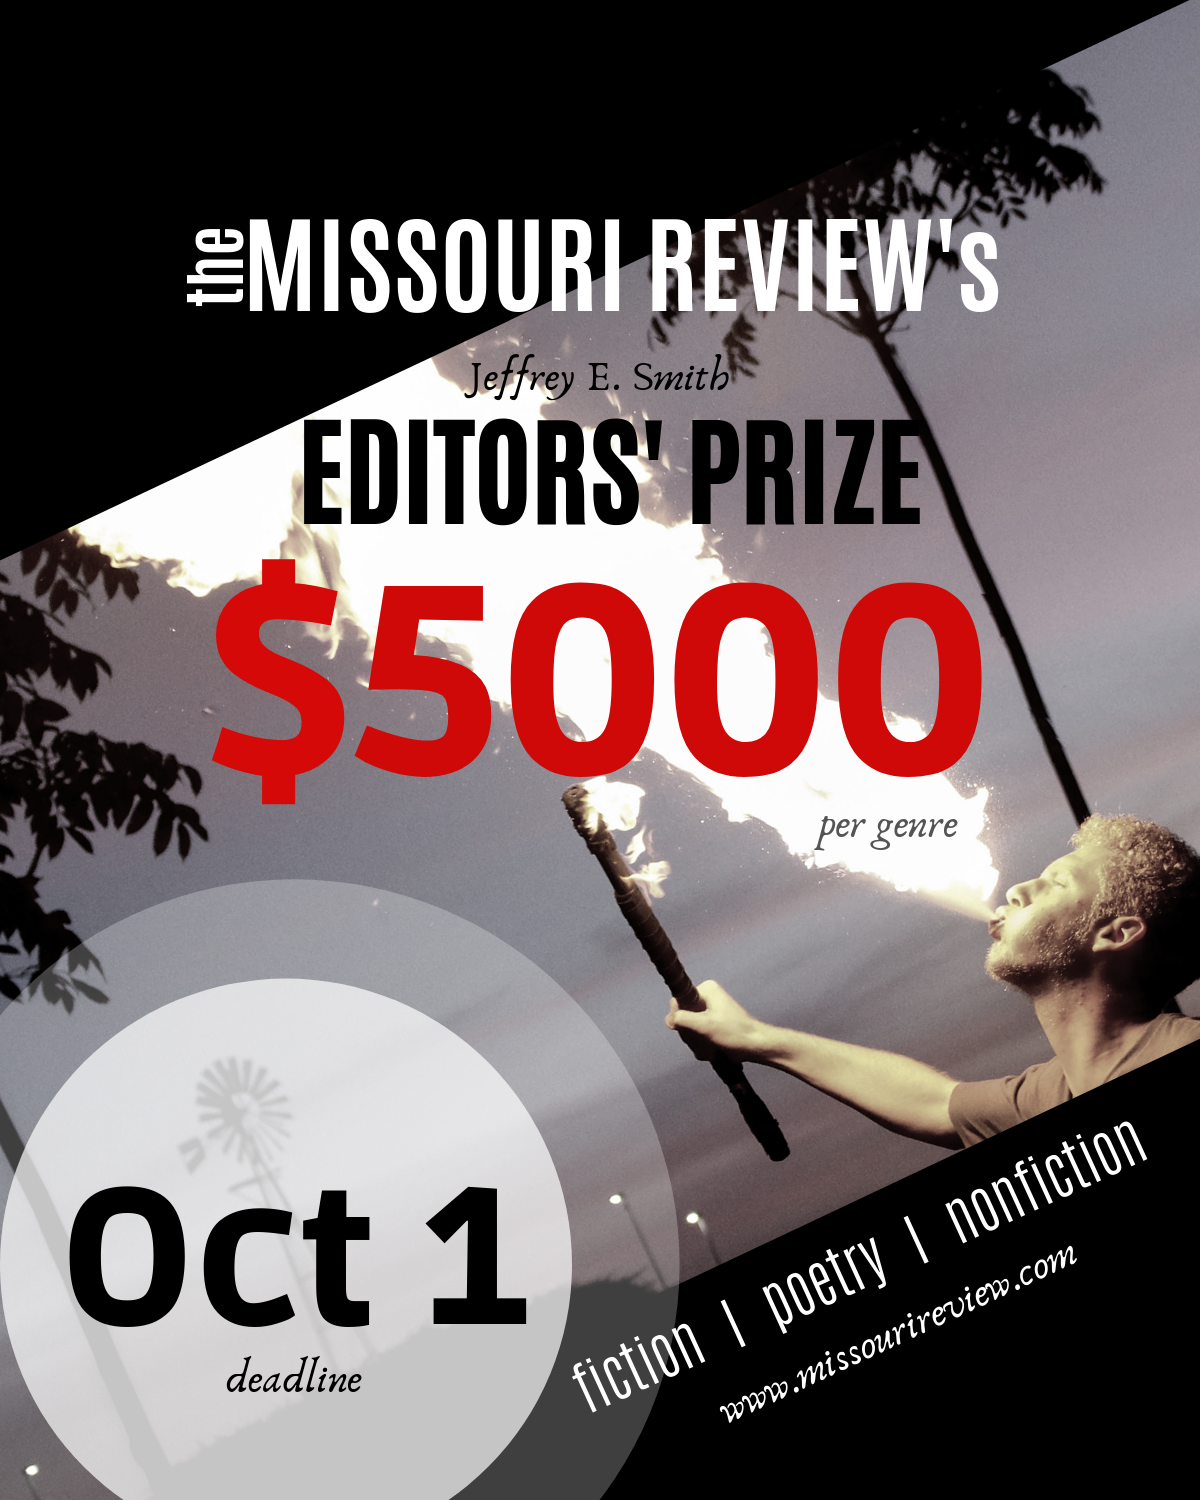 The Missouri Review's Editors' Prize: Entries Open Until 1 October